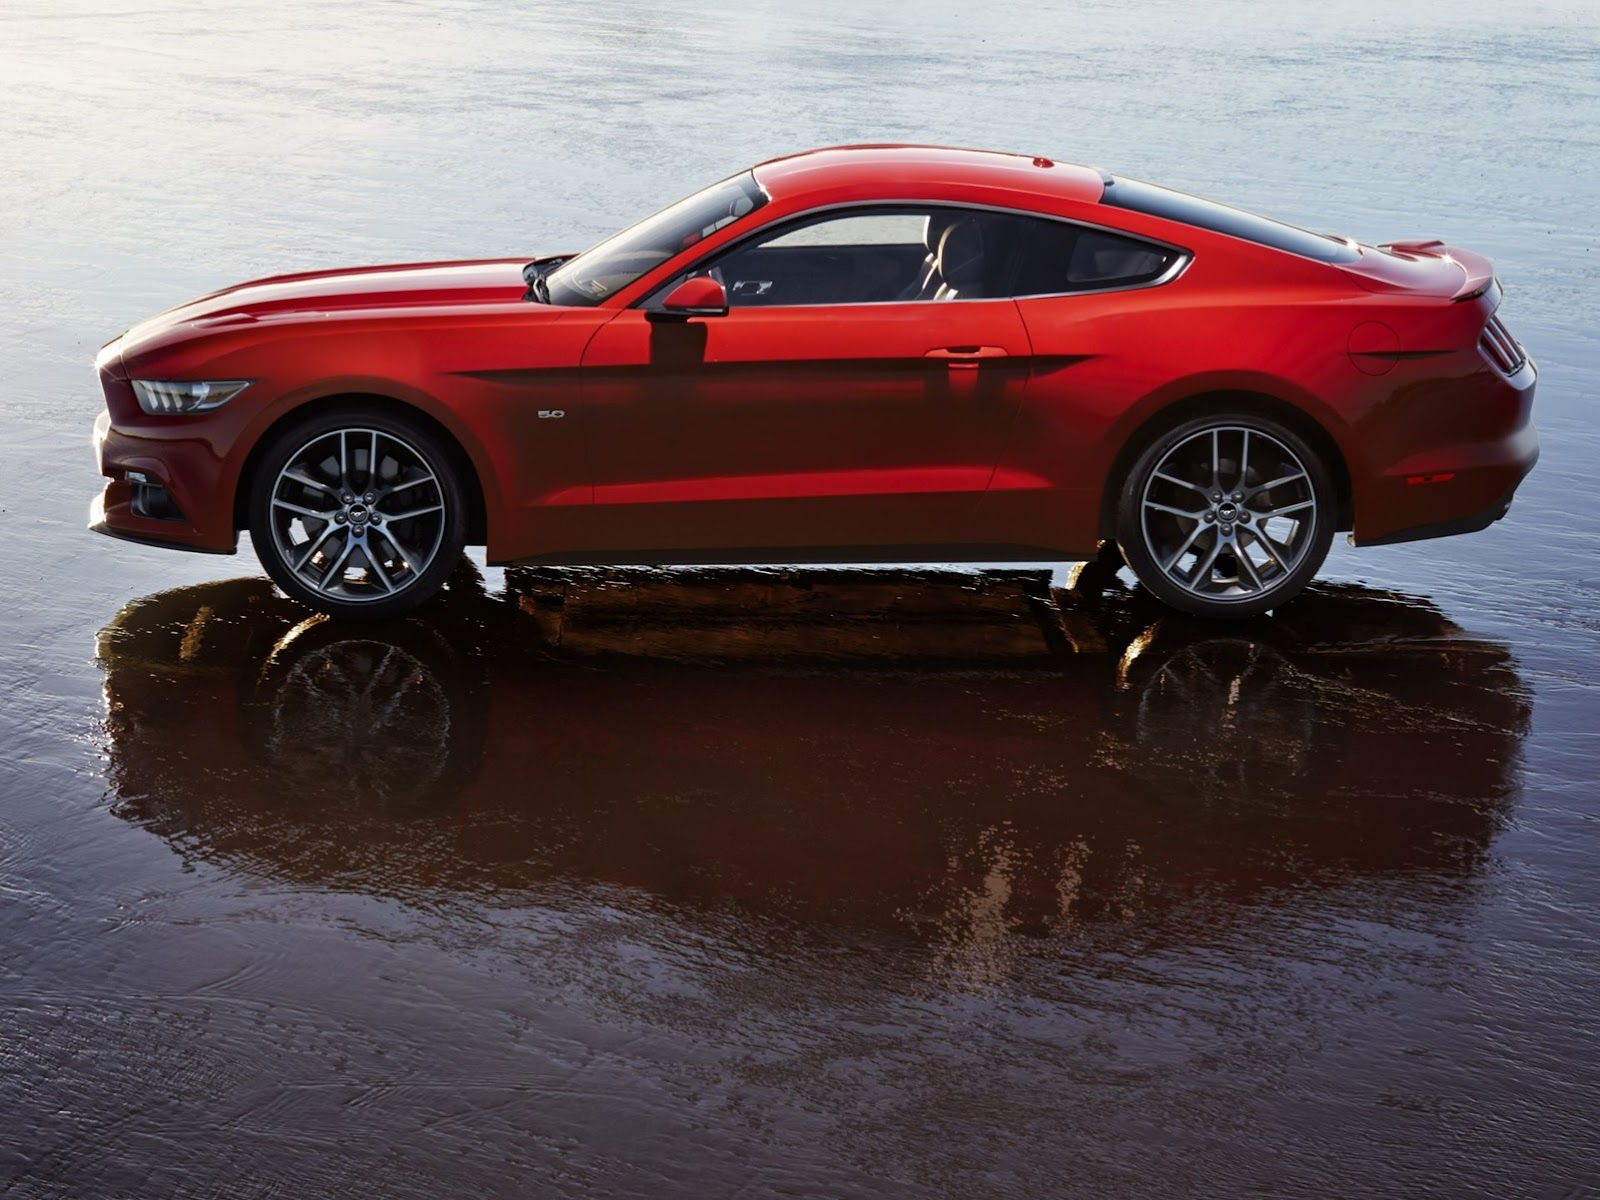 2015-Ford-Mustang-Photos-47%25255B2%25255D.jpg